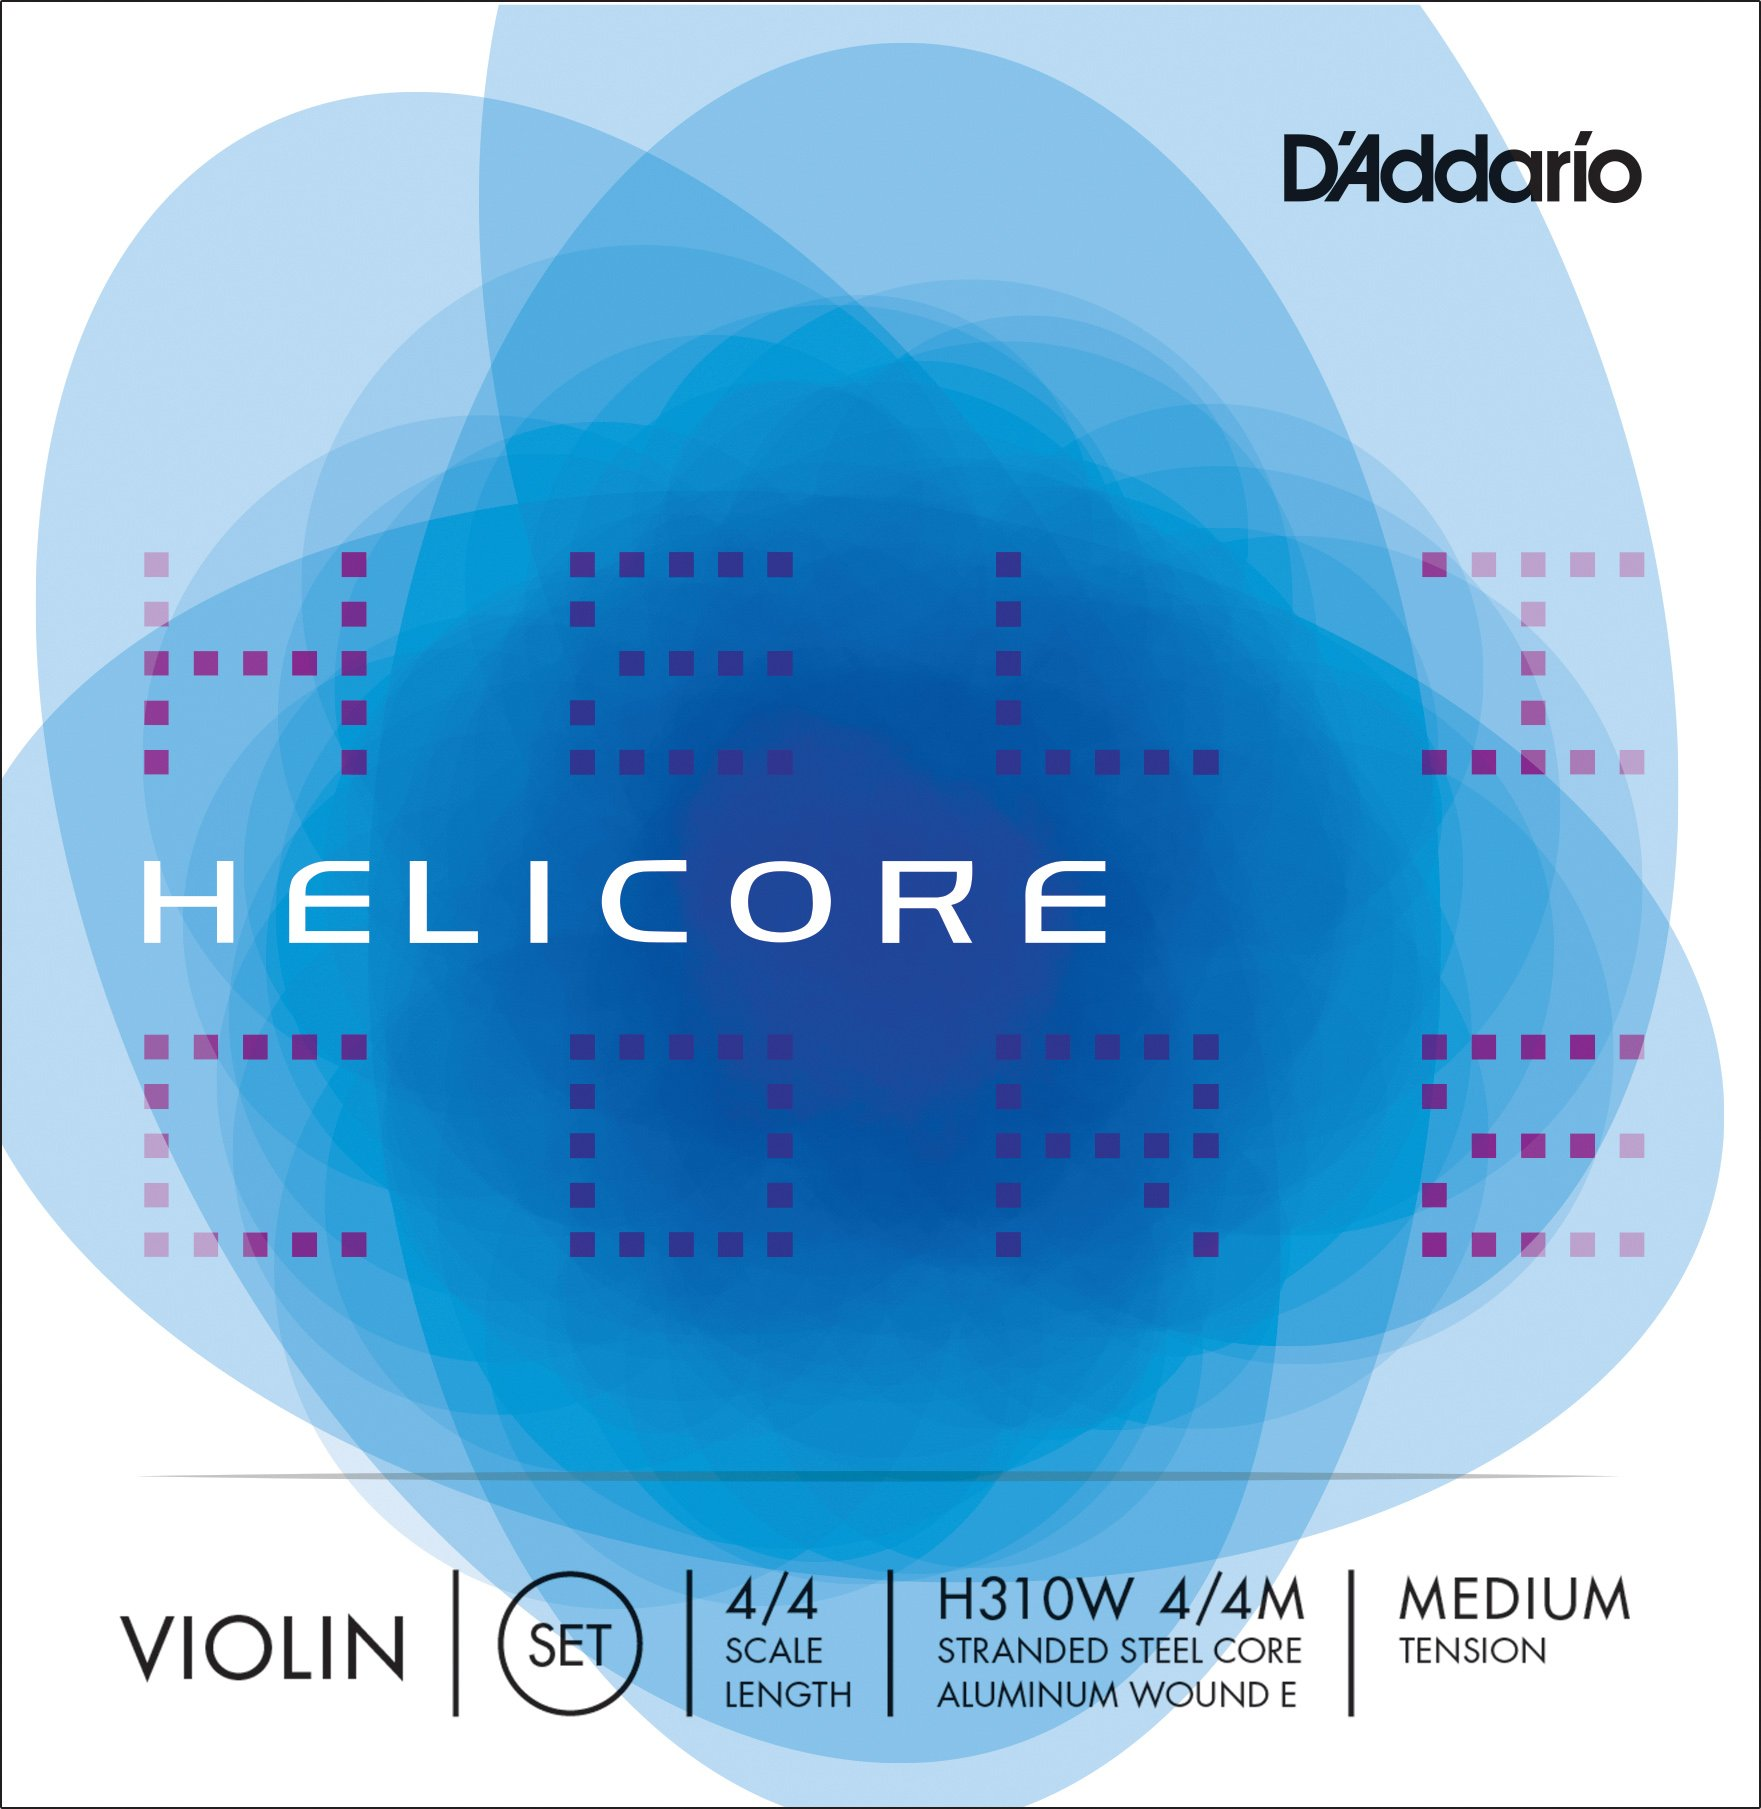 D'Addario H310W Helicore Violin String Set, 4/4 Scale Medium Tension with Steel E String (1 Set) - Stranded Steel Core for a Clear, Warm Tone - Versatile and Durable - Sealed Pouch Prevents Corrosion